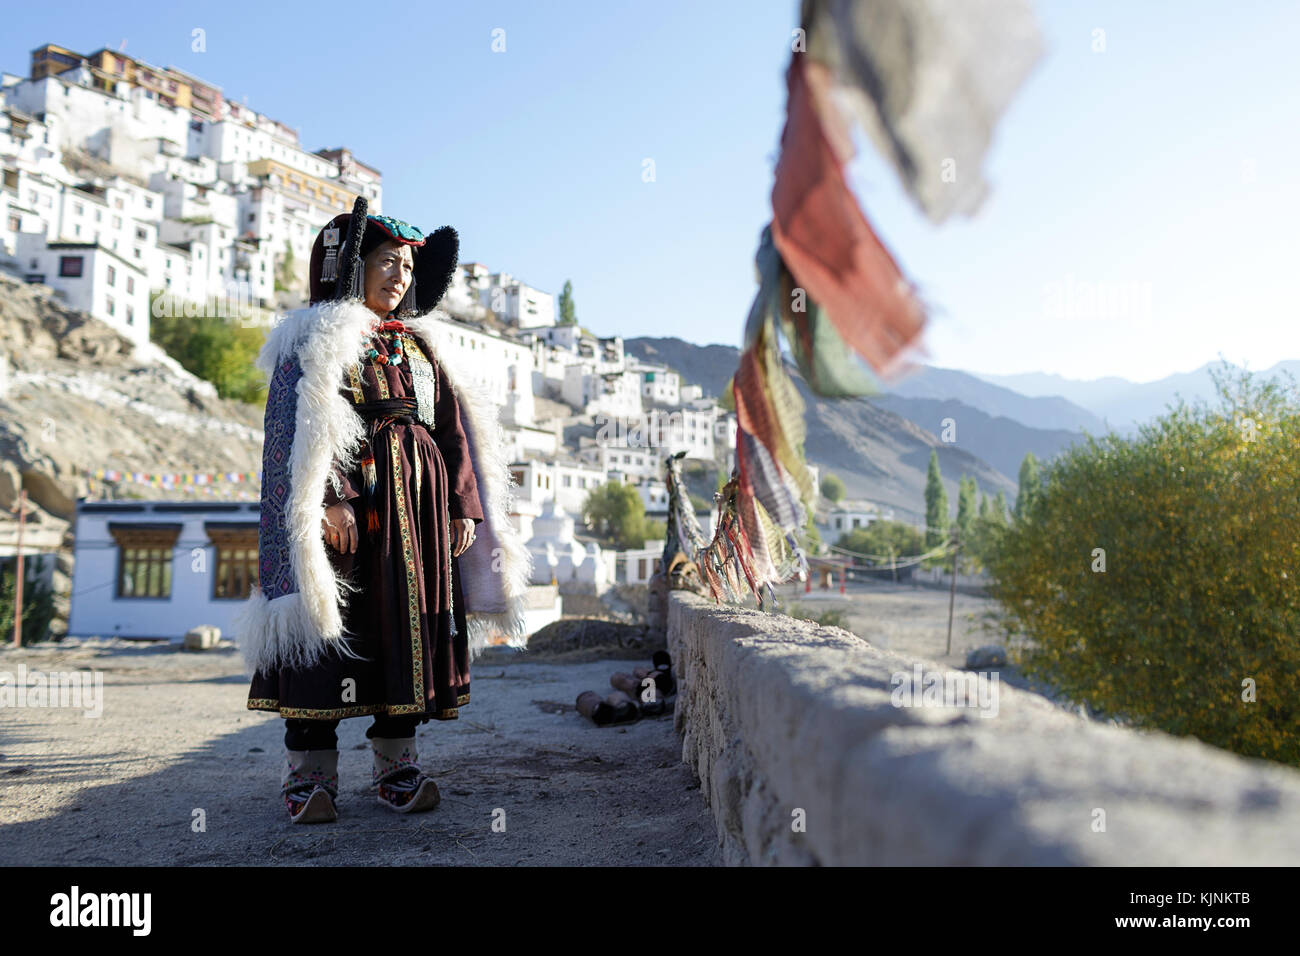 A local woman wearing traditional clothes, Leh, Ladakh, Jammu and Kashmir, India - Stock Image